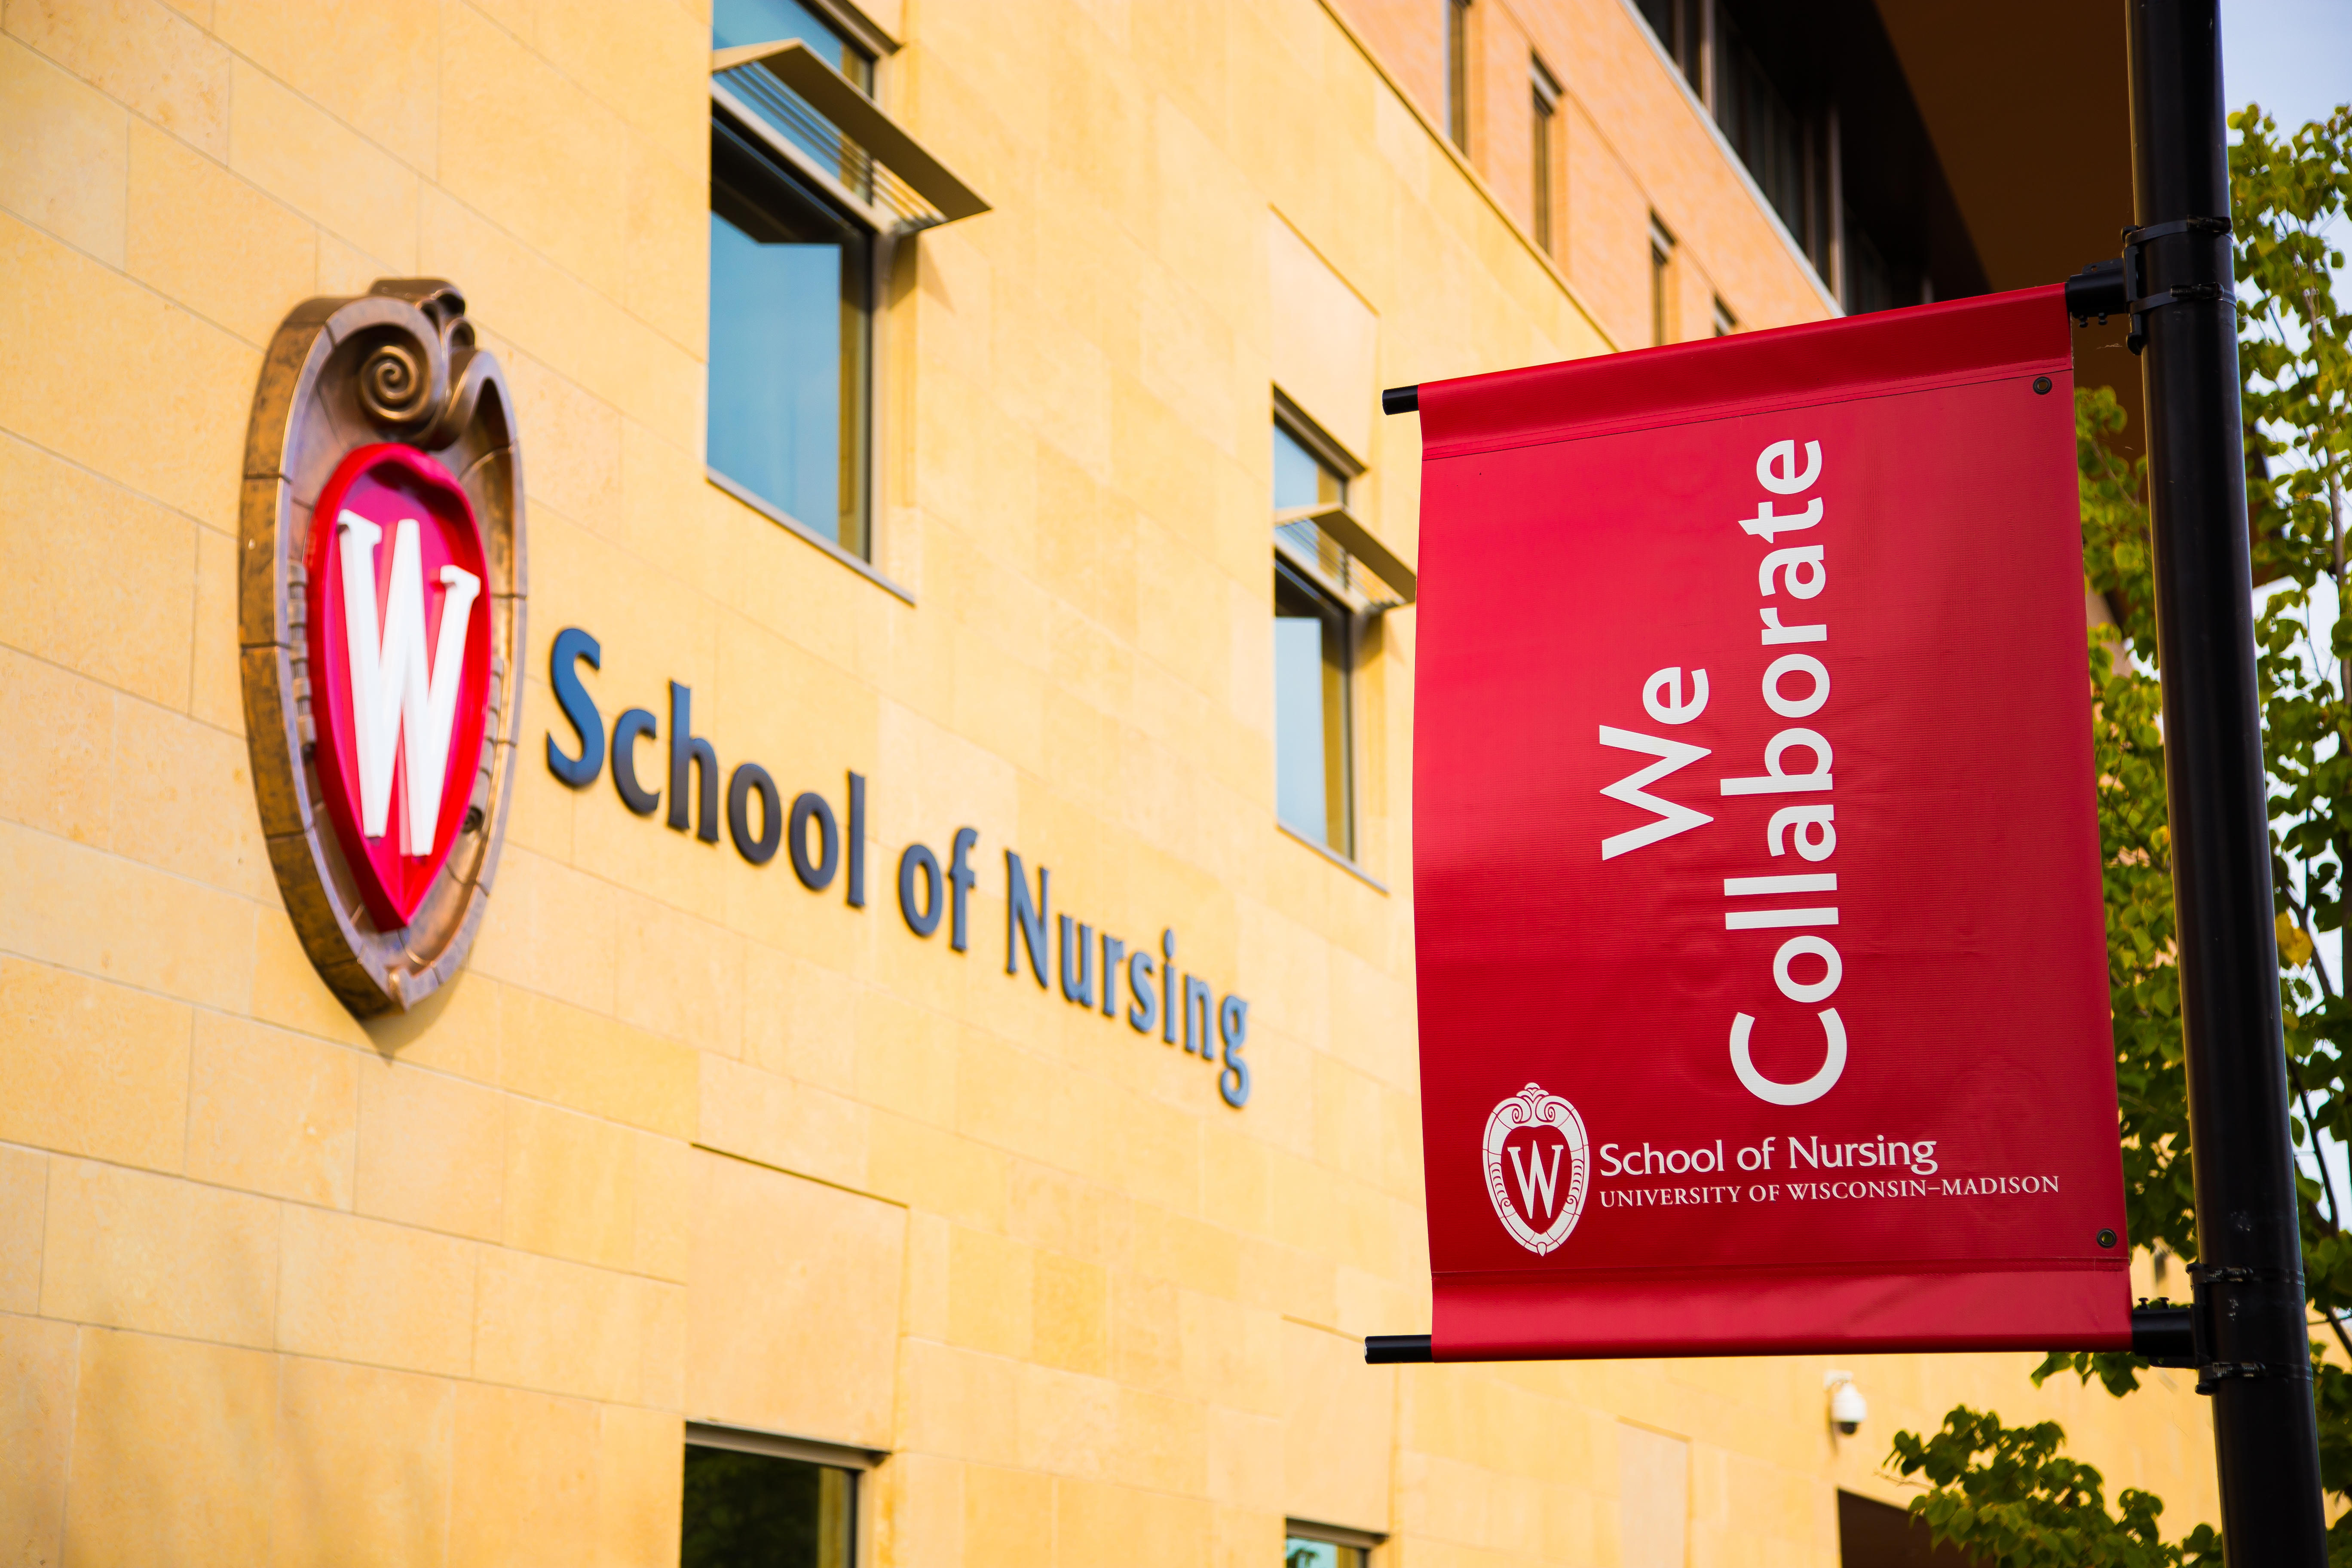 School of Nursing building and light post flag stating--We Collaborate